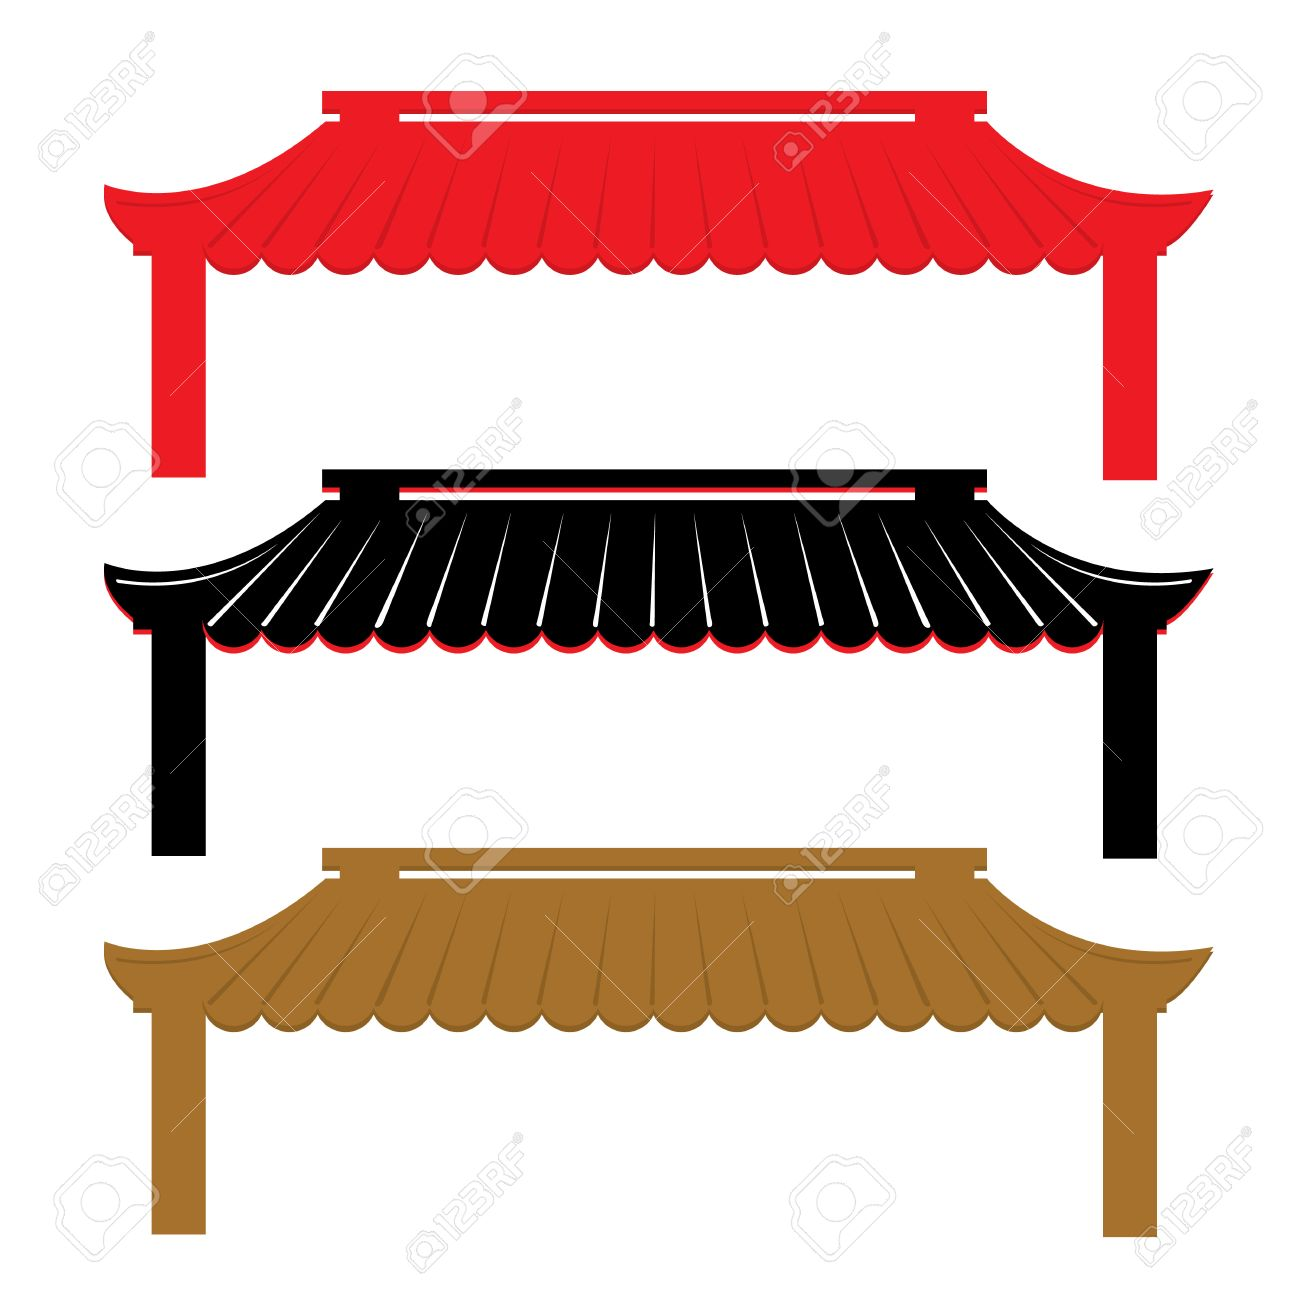 Roof Traditional China Vector - 38392609